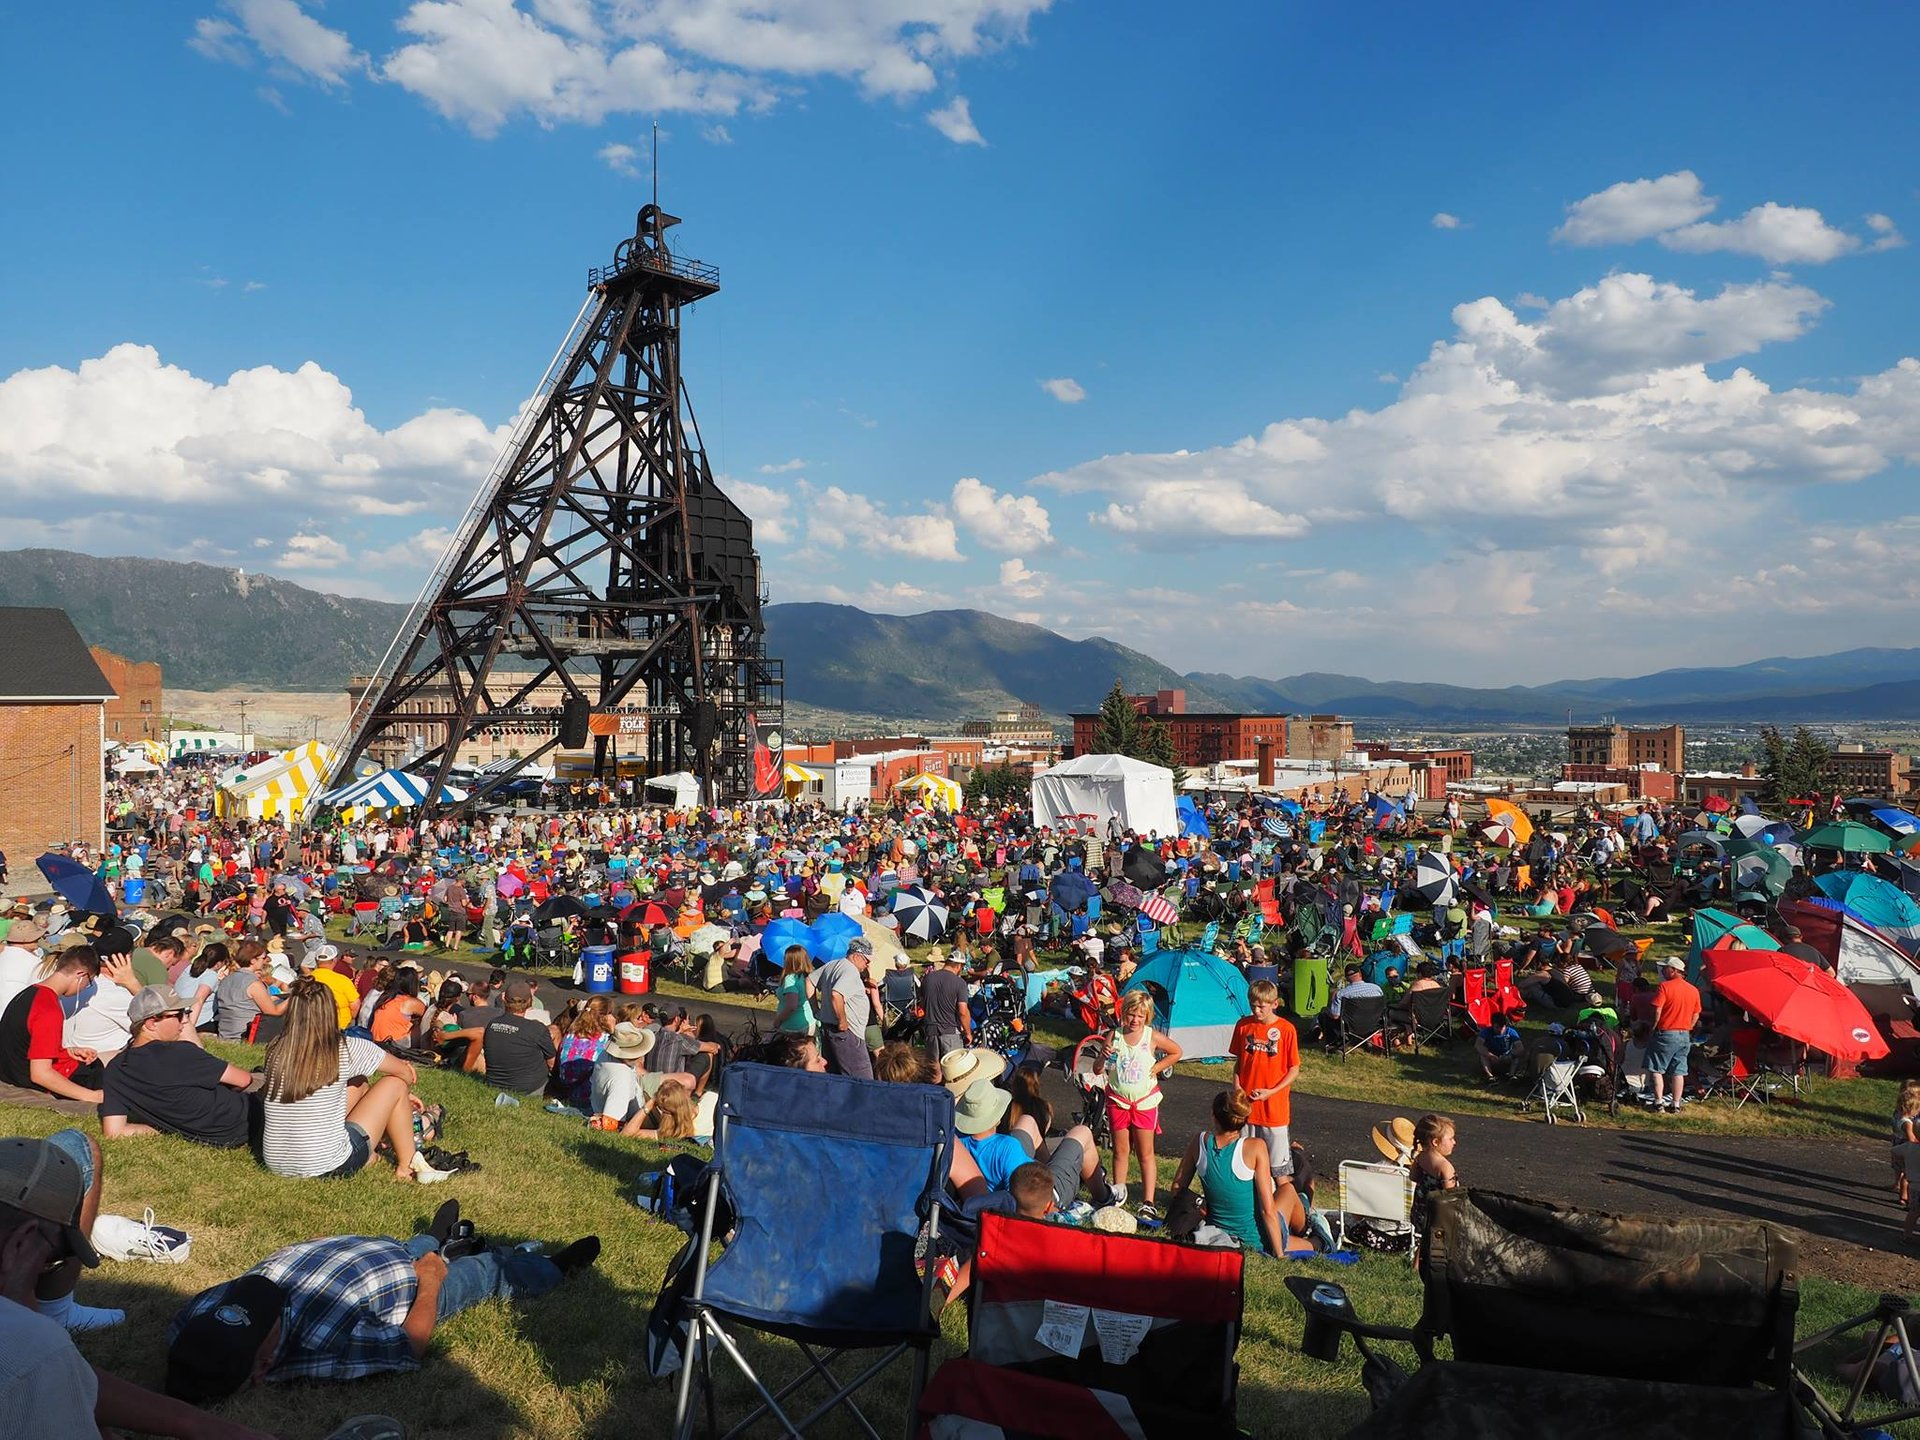 Montana Folk Festival in Montana 2020 - Best Time